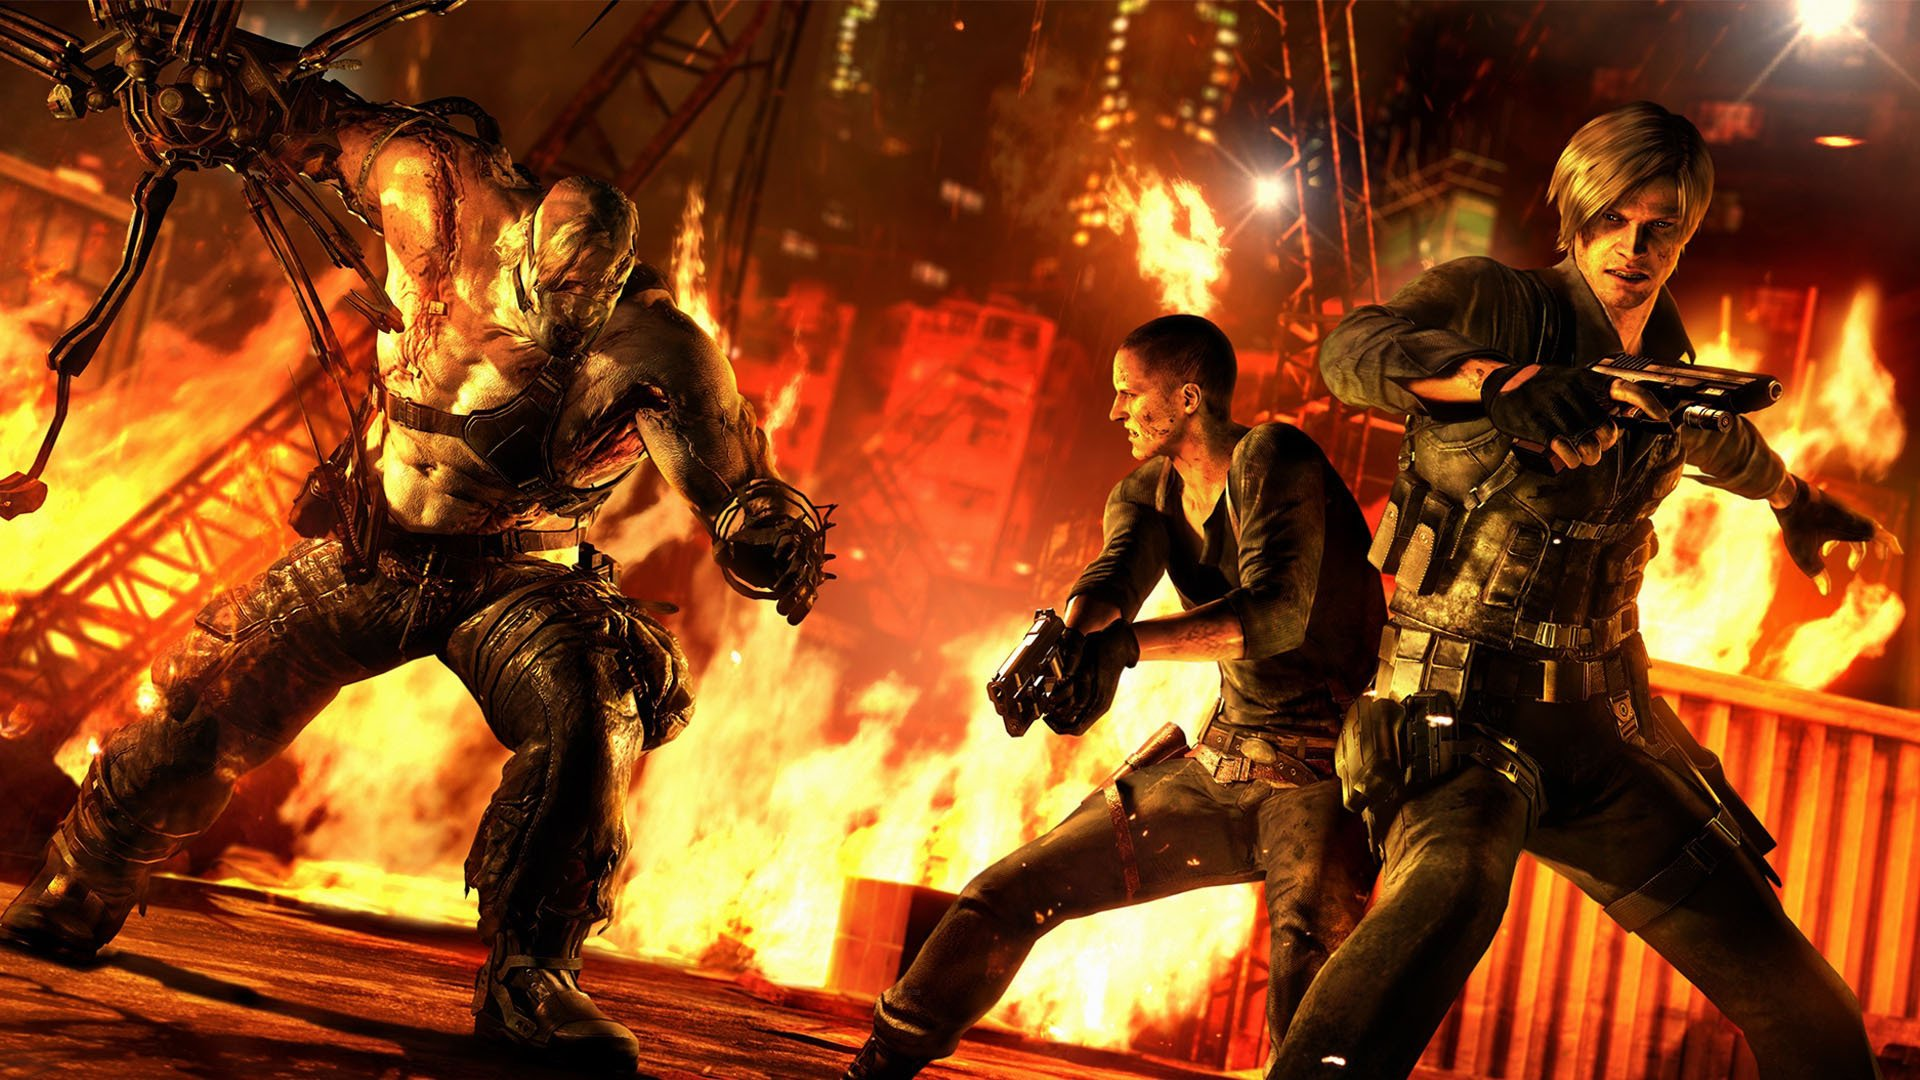 233 Resident Evil 6 HD Wallpapers | Background Images